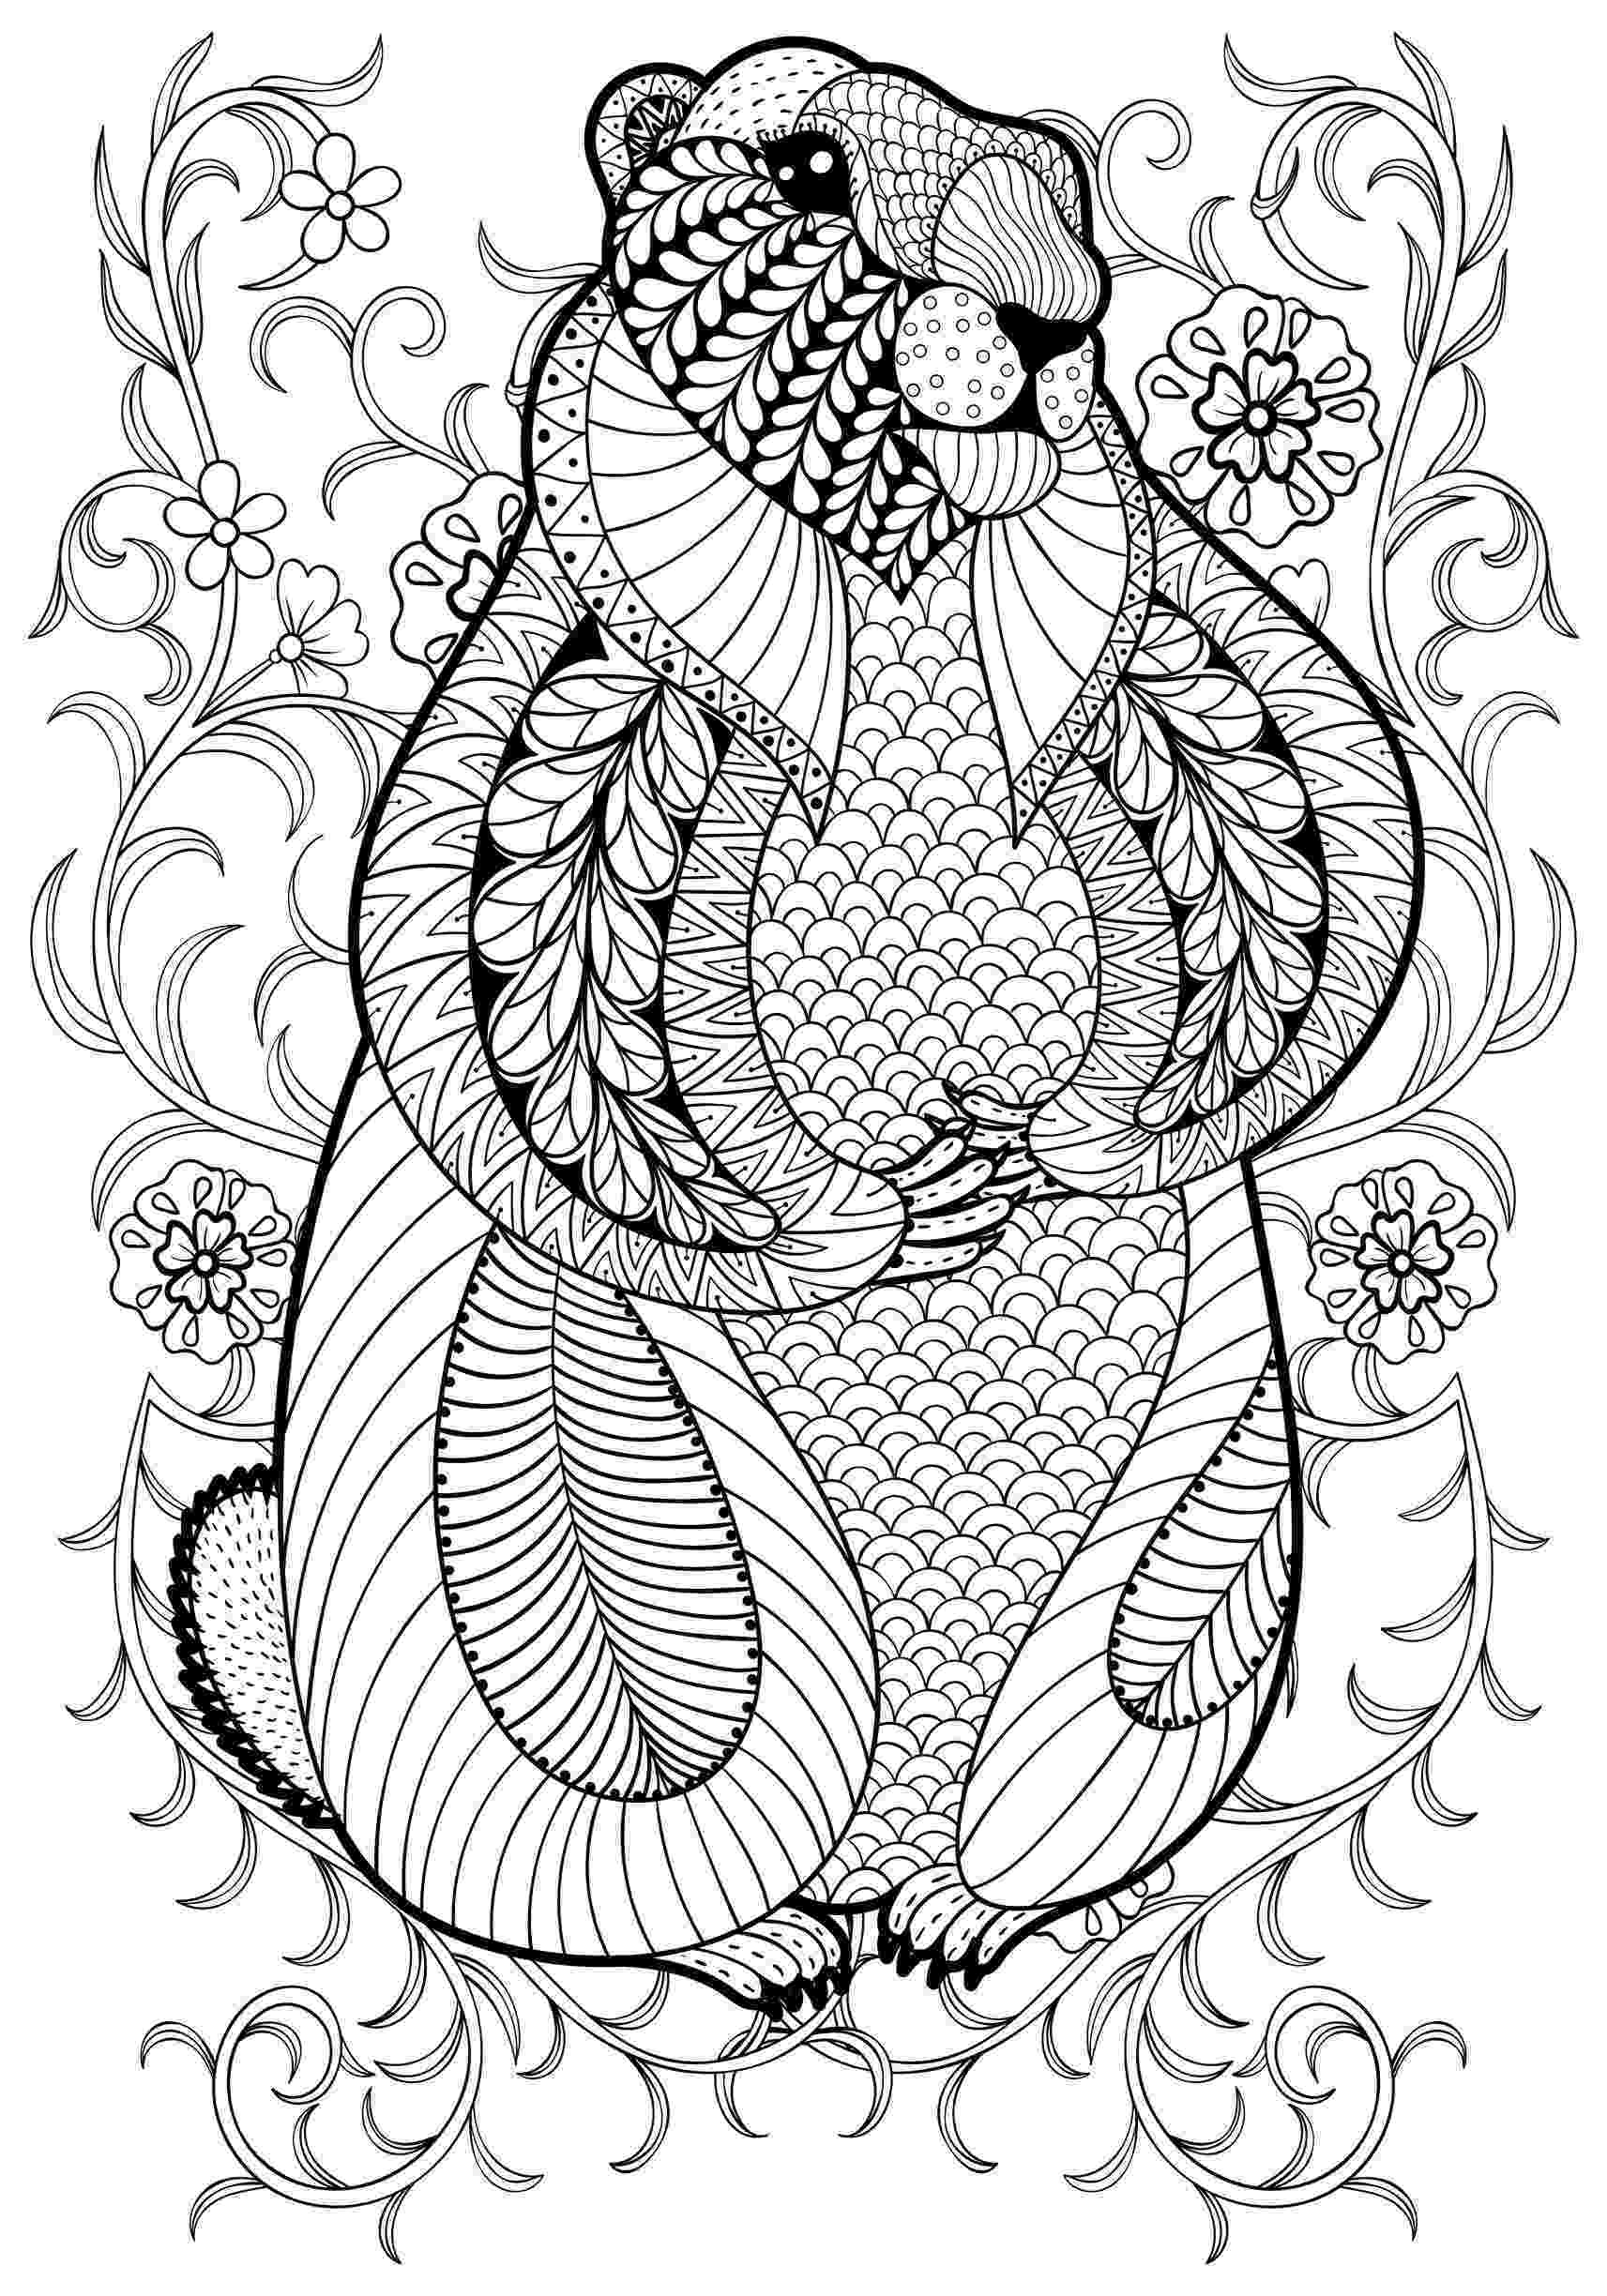 animal coloring book for adults pin by beth conroy on color animals adult coloring pages book for coloring animal adults